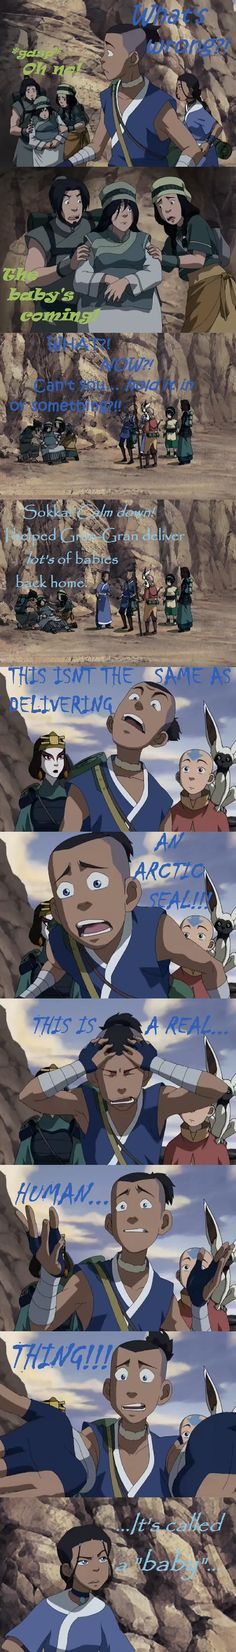 Avatar The Last Airbender - And Sokka freaks out...